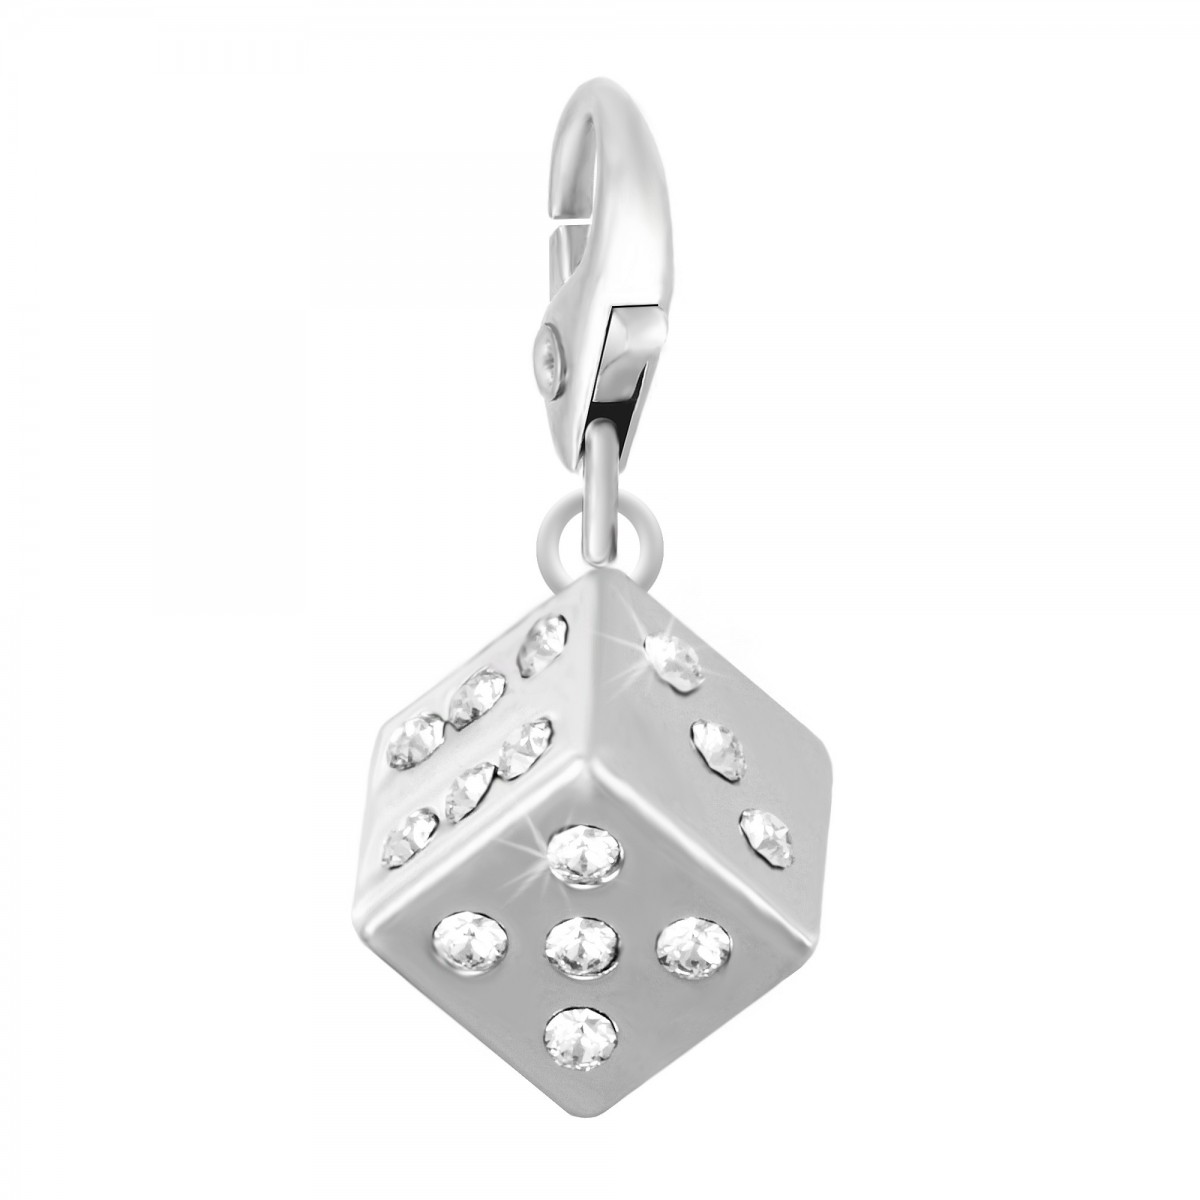 Charm Dé So Charm made with Crystal from Swarovski